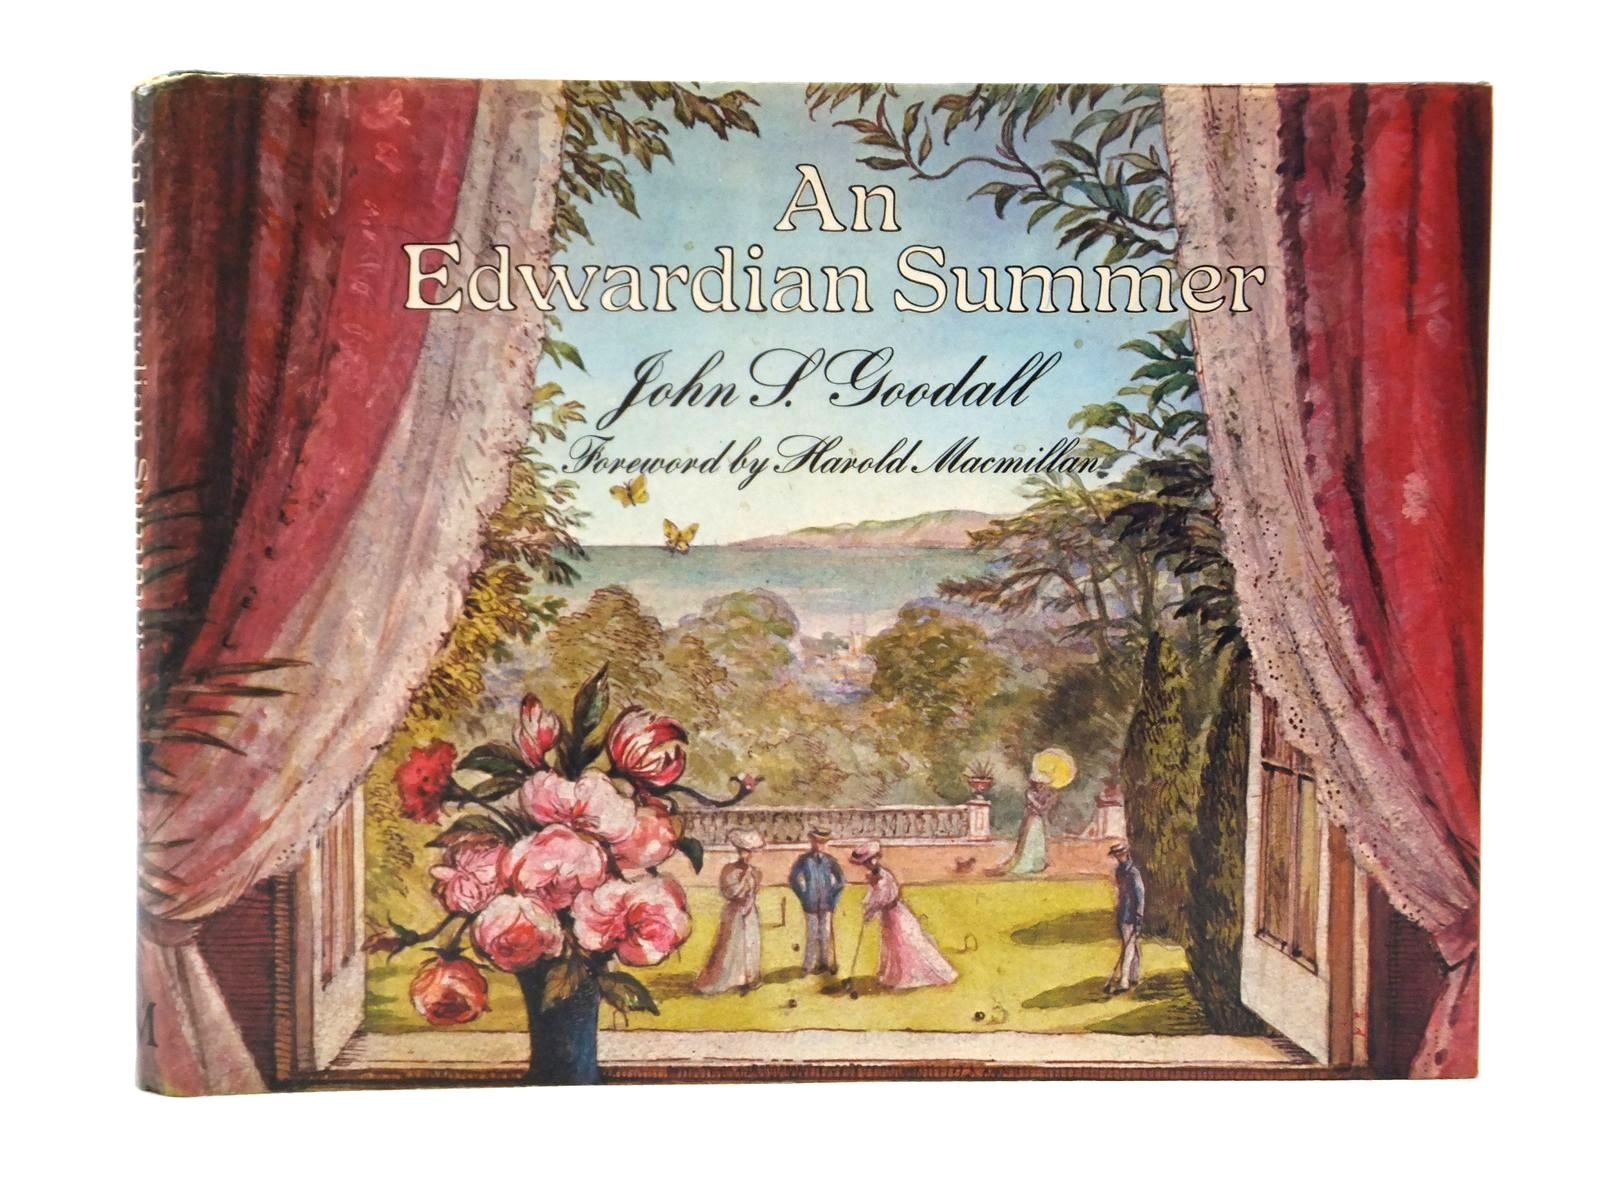 Photo of AN EDWARDIAN SUMMER written by Goodall, John S. illustrated by Goodall, John S. published by Macmillan London Limited (STOCK CODE: 1609207)  for sale by Stella & Rose's Books